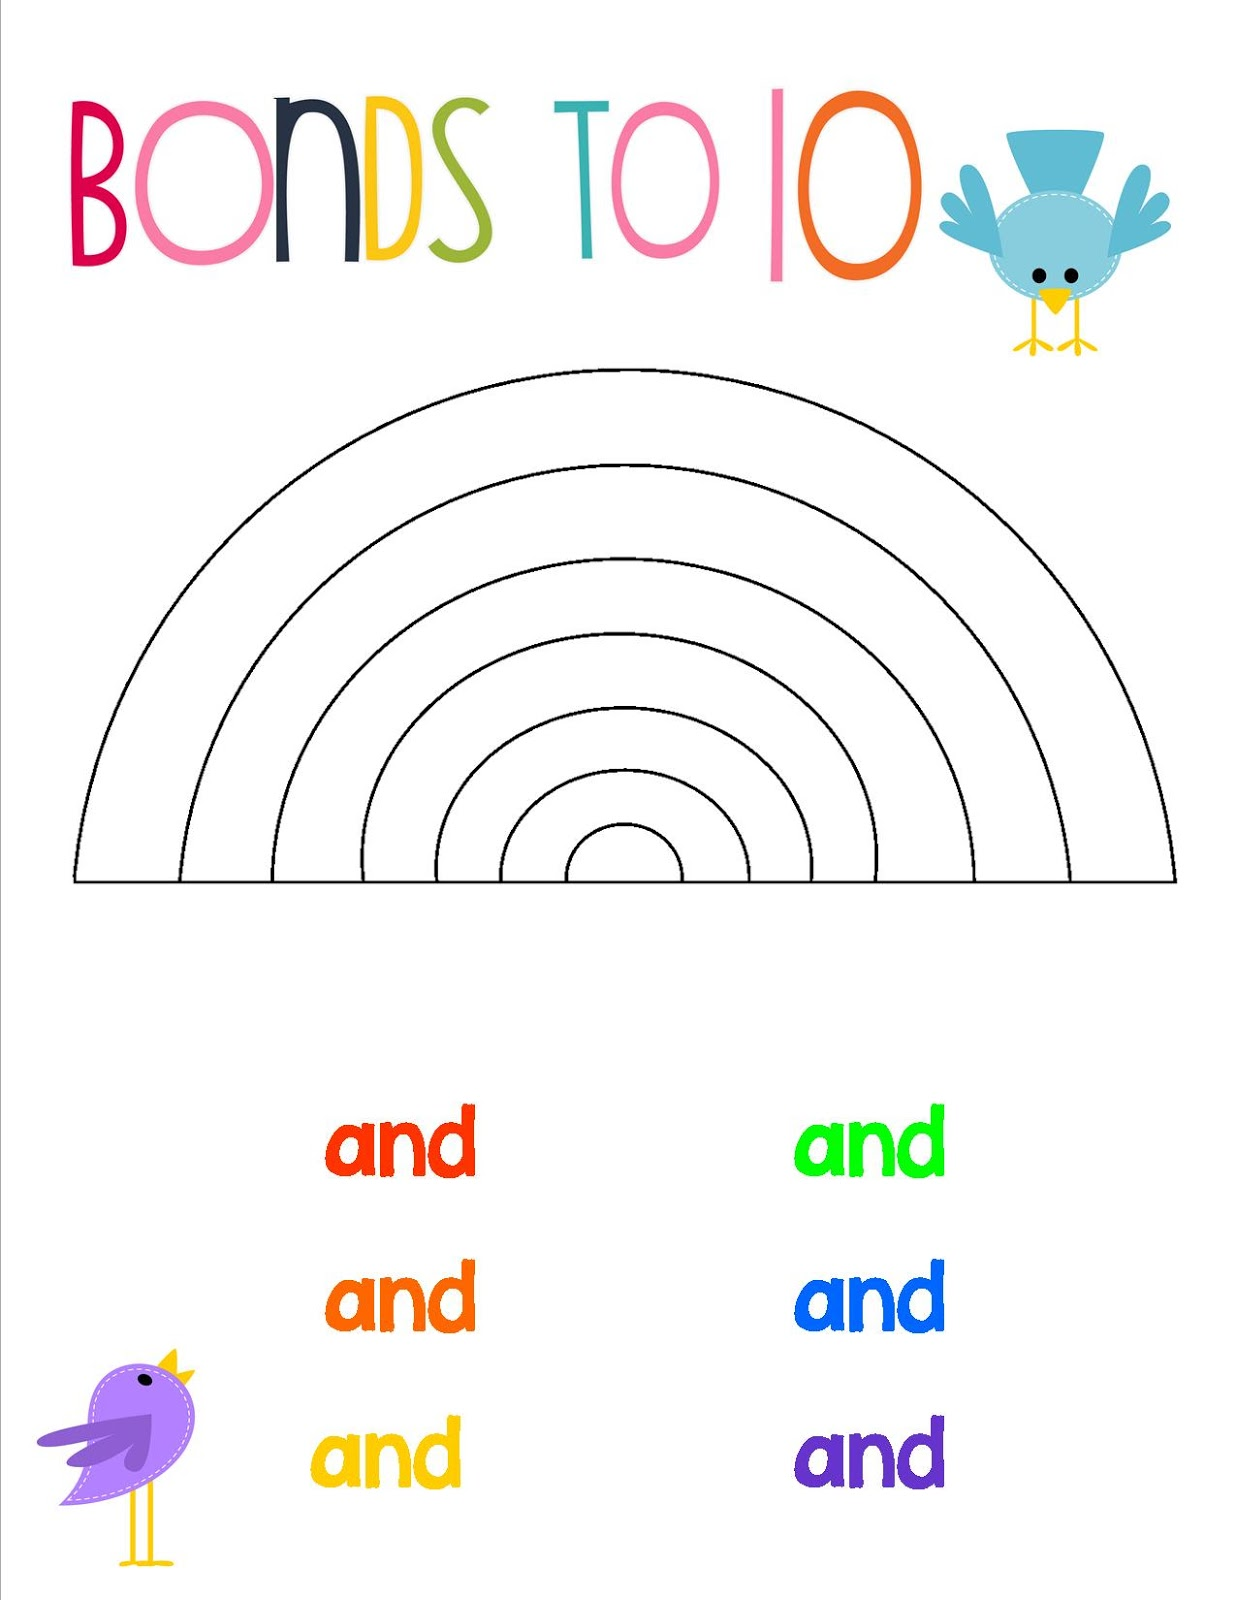 worksheet Number Bonds early years fun number bonds to 10 free poster black and white version for students